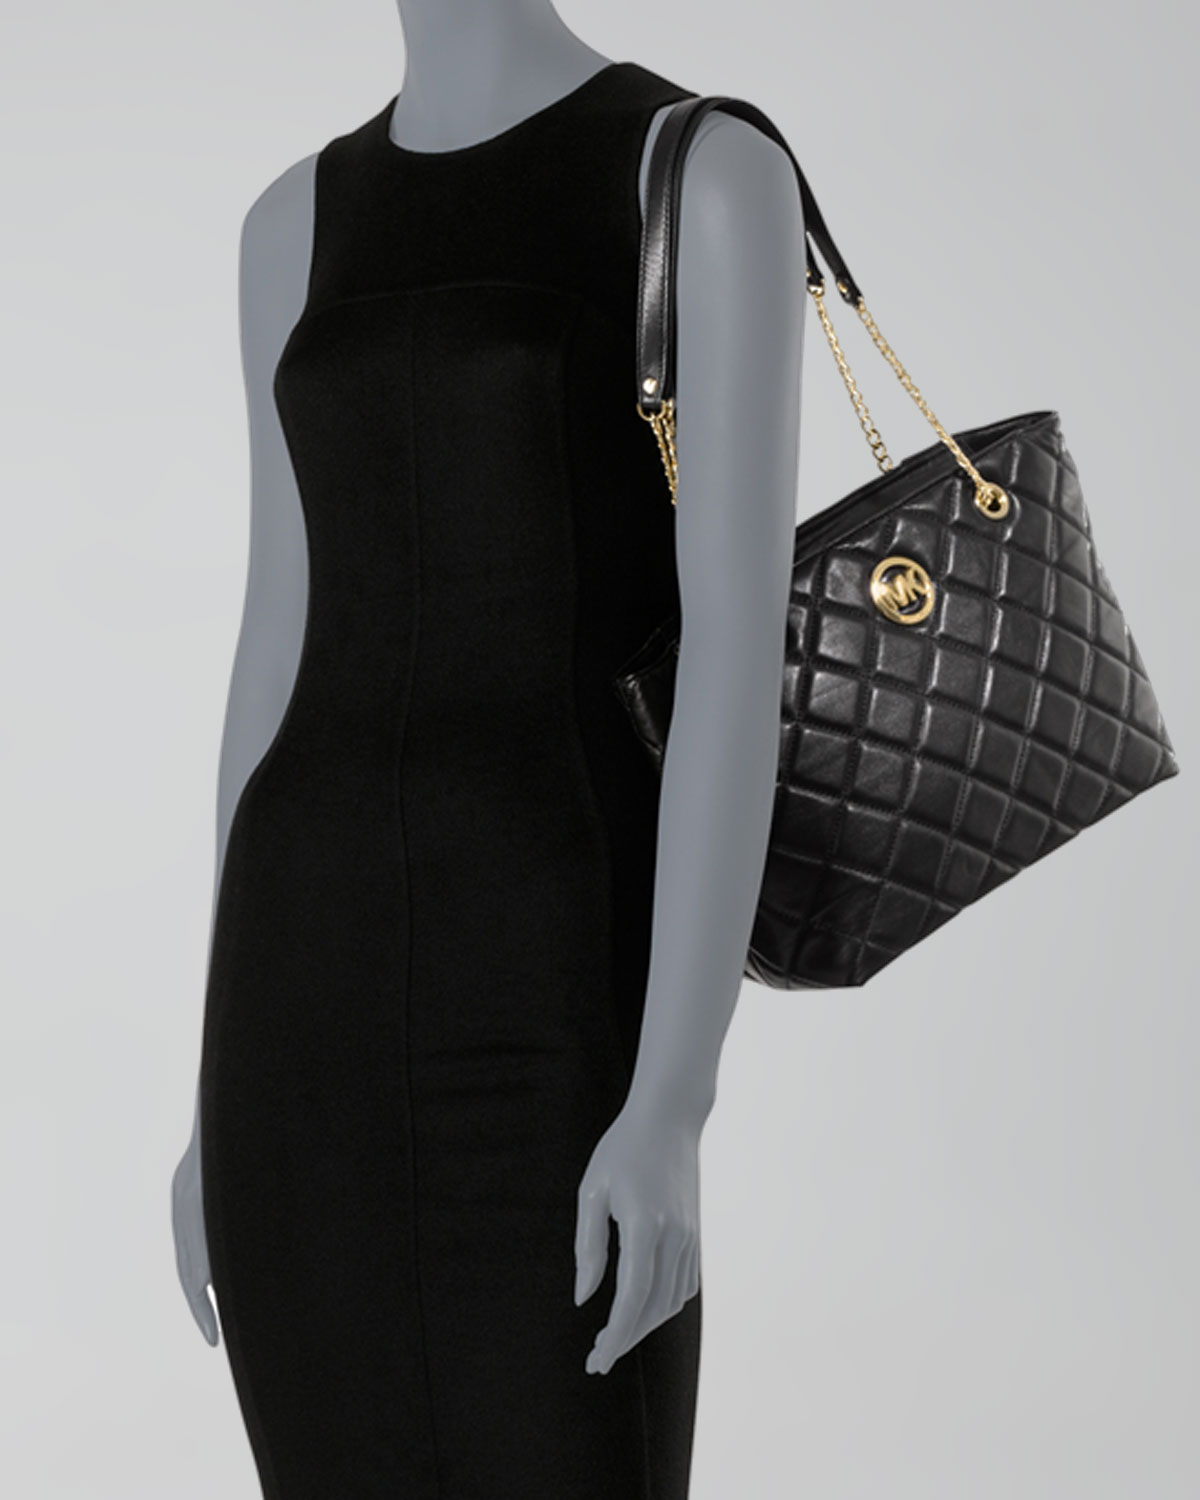 Lyst - Michael michael kors Large Fulton Quilted Tote in Black : michael kors fulton quilt - Adamdwight.com